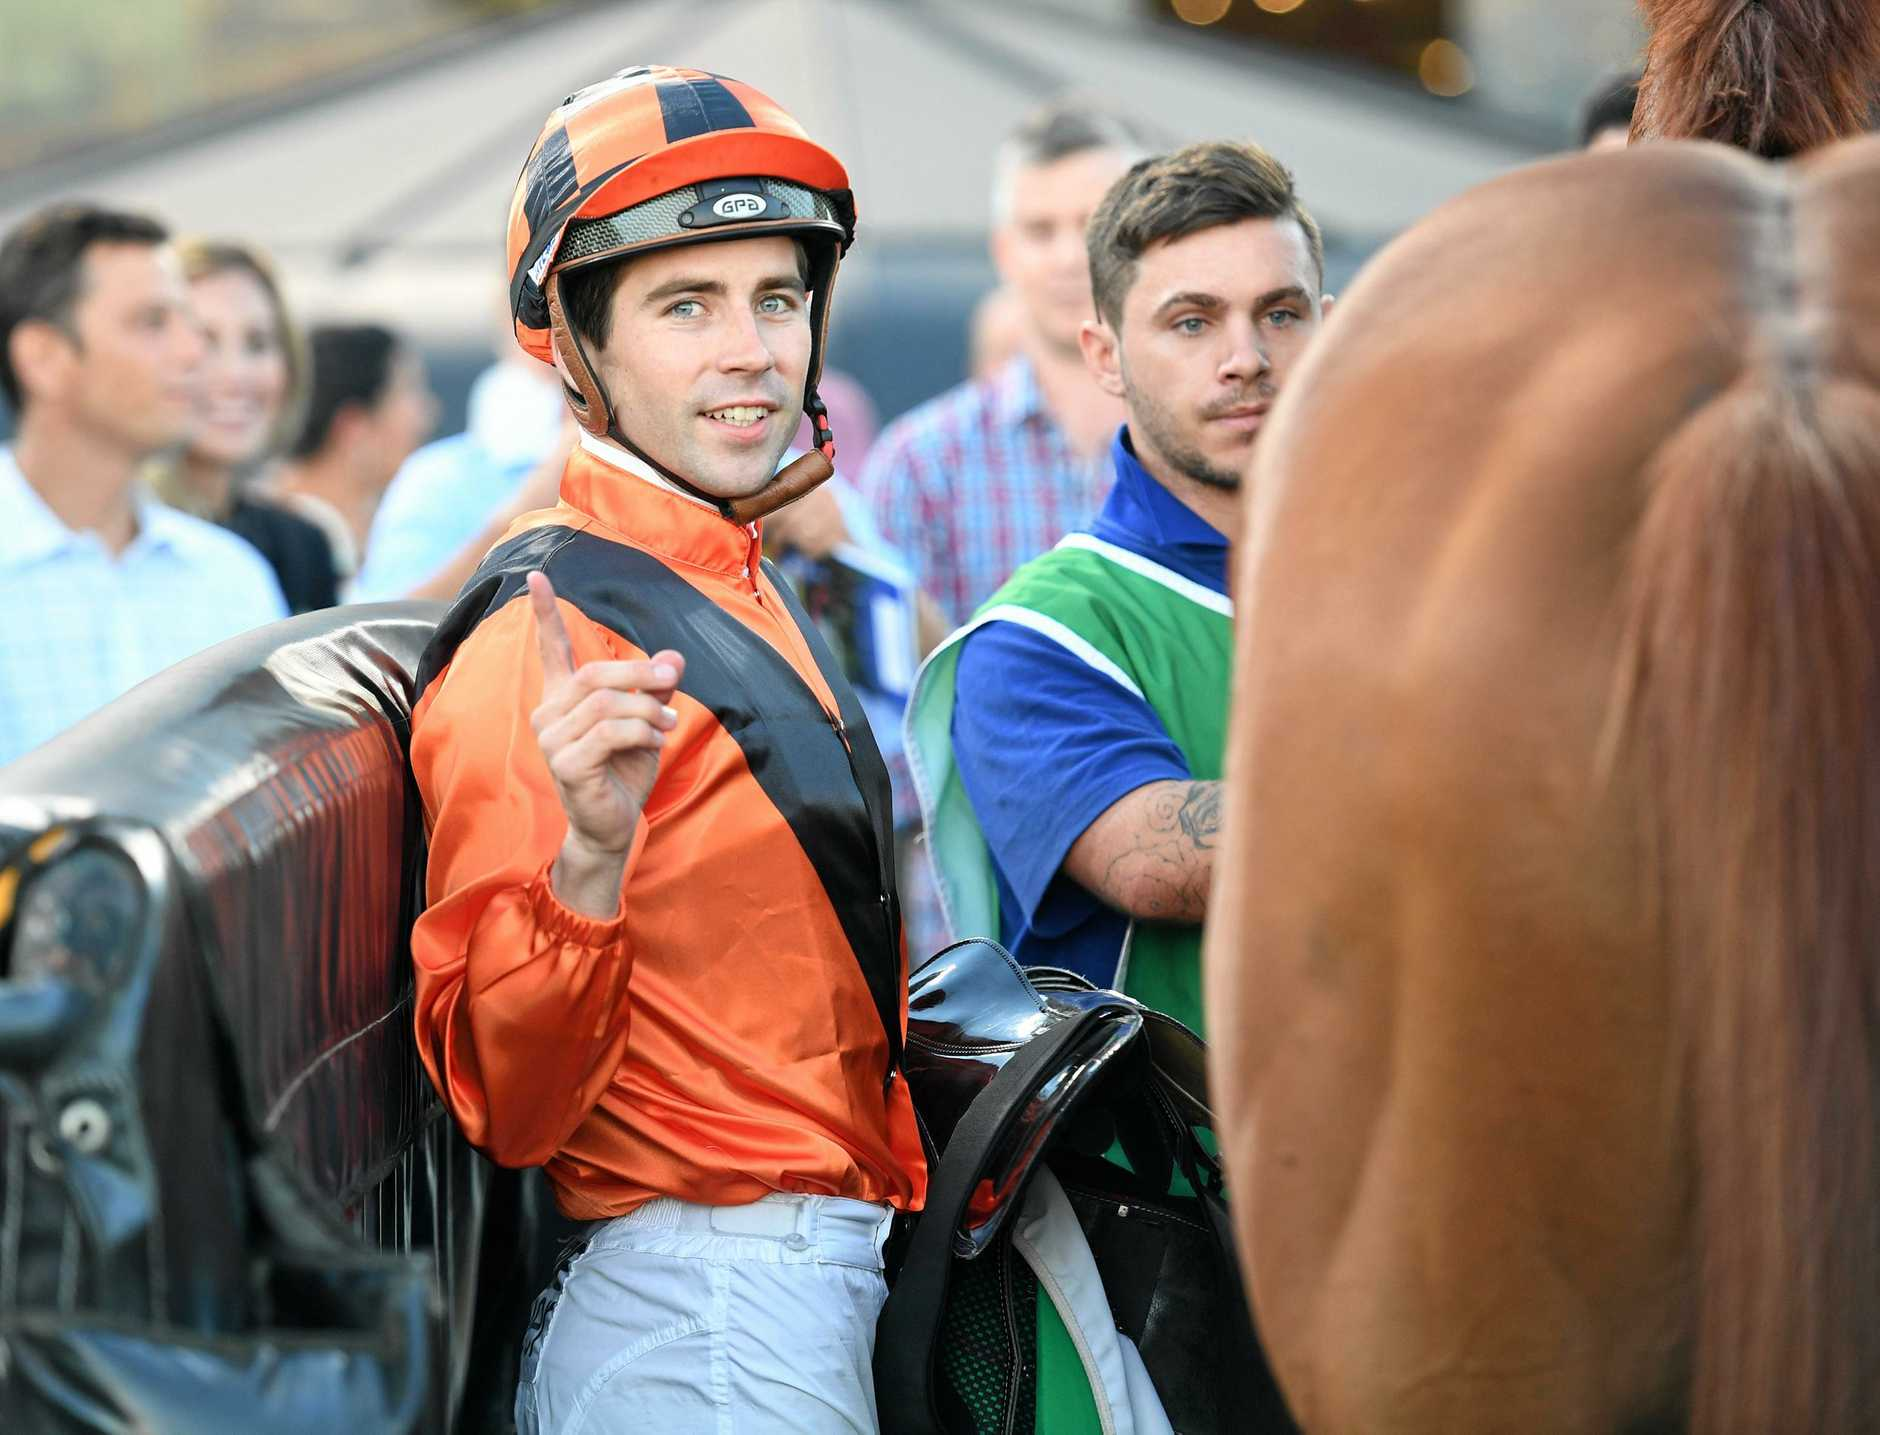 Jockey Adam Hyeronimus returns to scale riding Jemadar to win race 4 the TAB Handicap during Canterbury Park Summer Night Racing at Canterbury Park Racecourse this year.